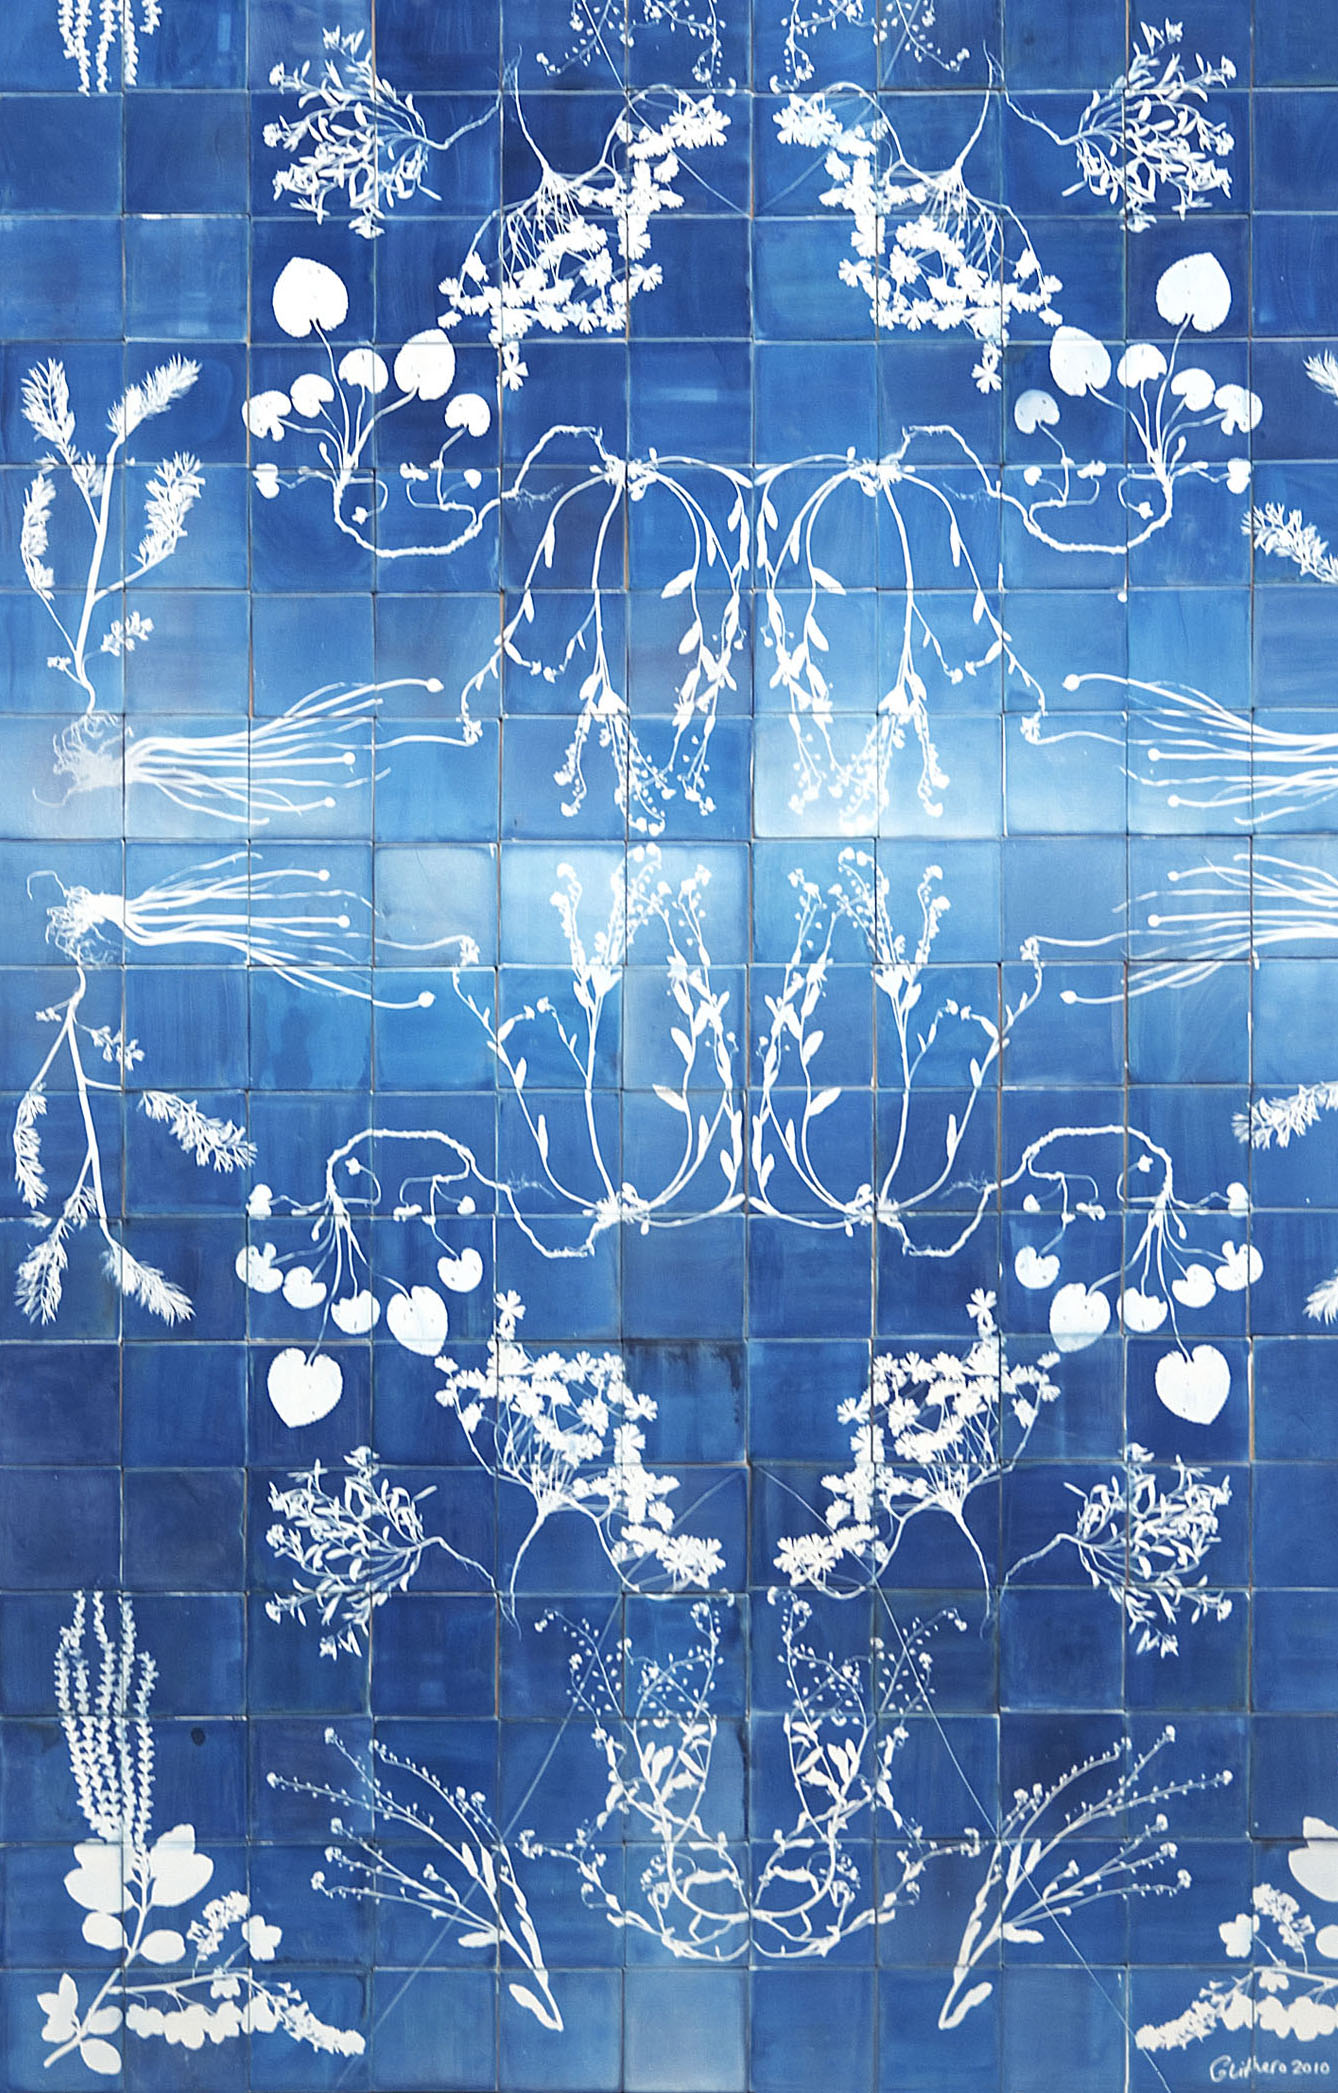 Blueware tiles are ceramic tiles with cyanotype photograms of foraged weeds. We select flora from our herbarium to make intricate composition that are then captured onto photosensitive tiles using light. Symmetrical patterns are made by flipping the weeds over and exposing them to light from the other side.